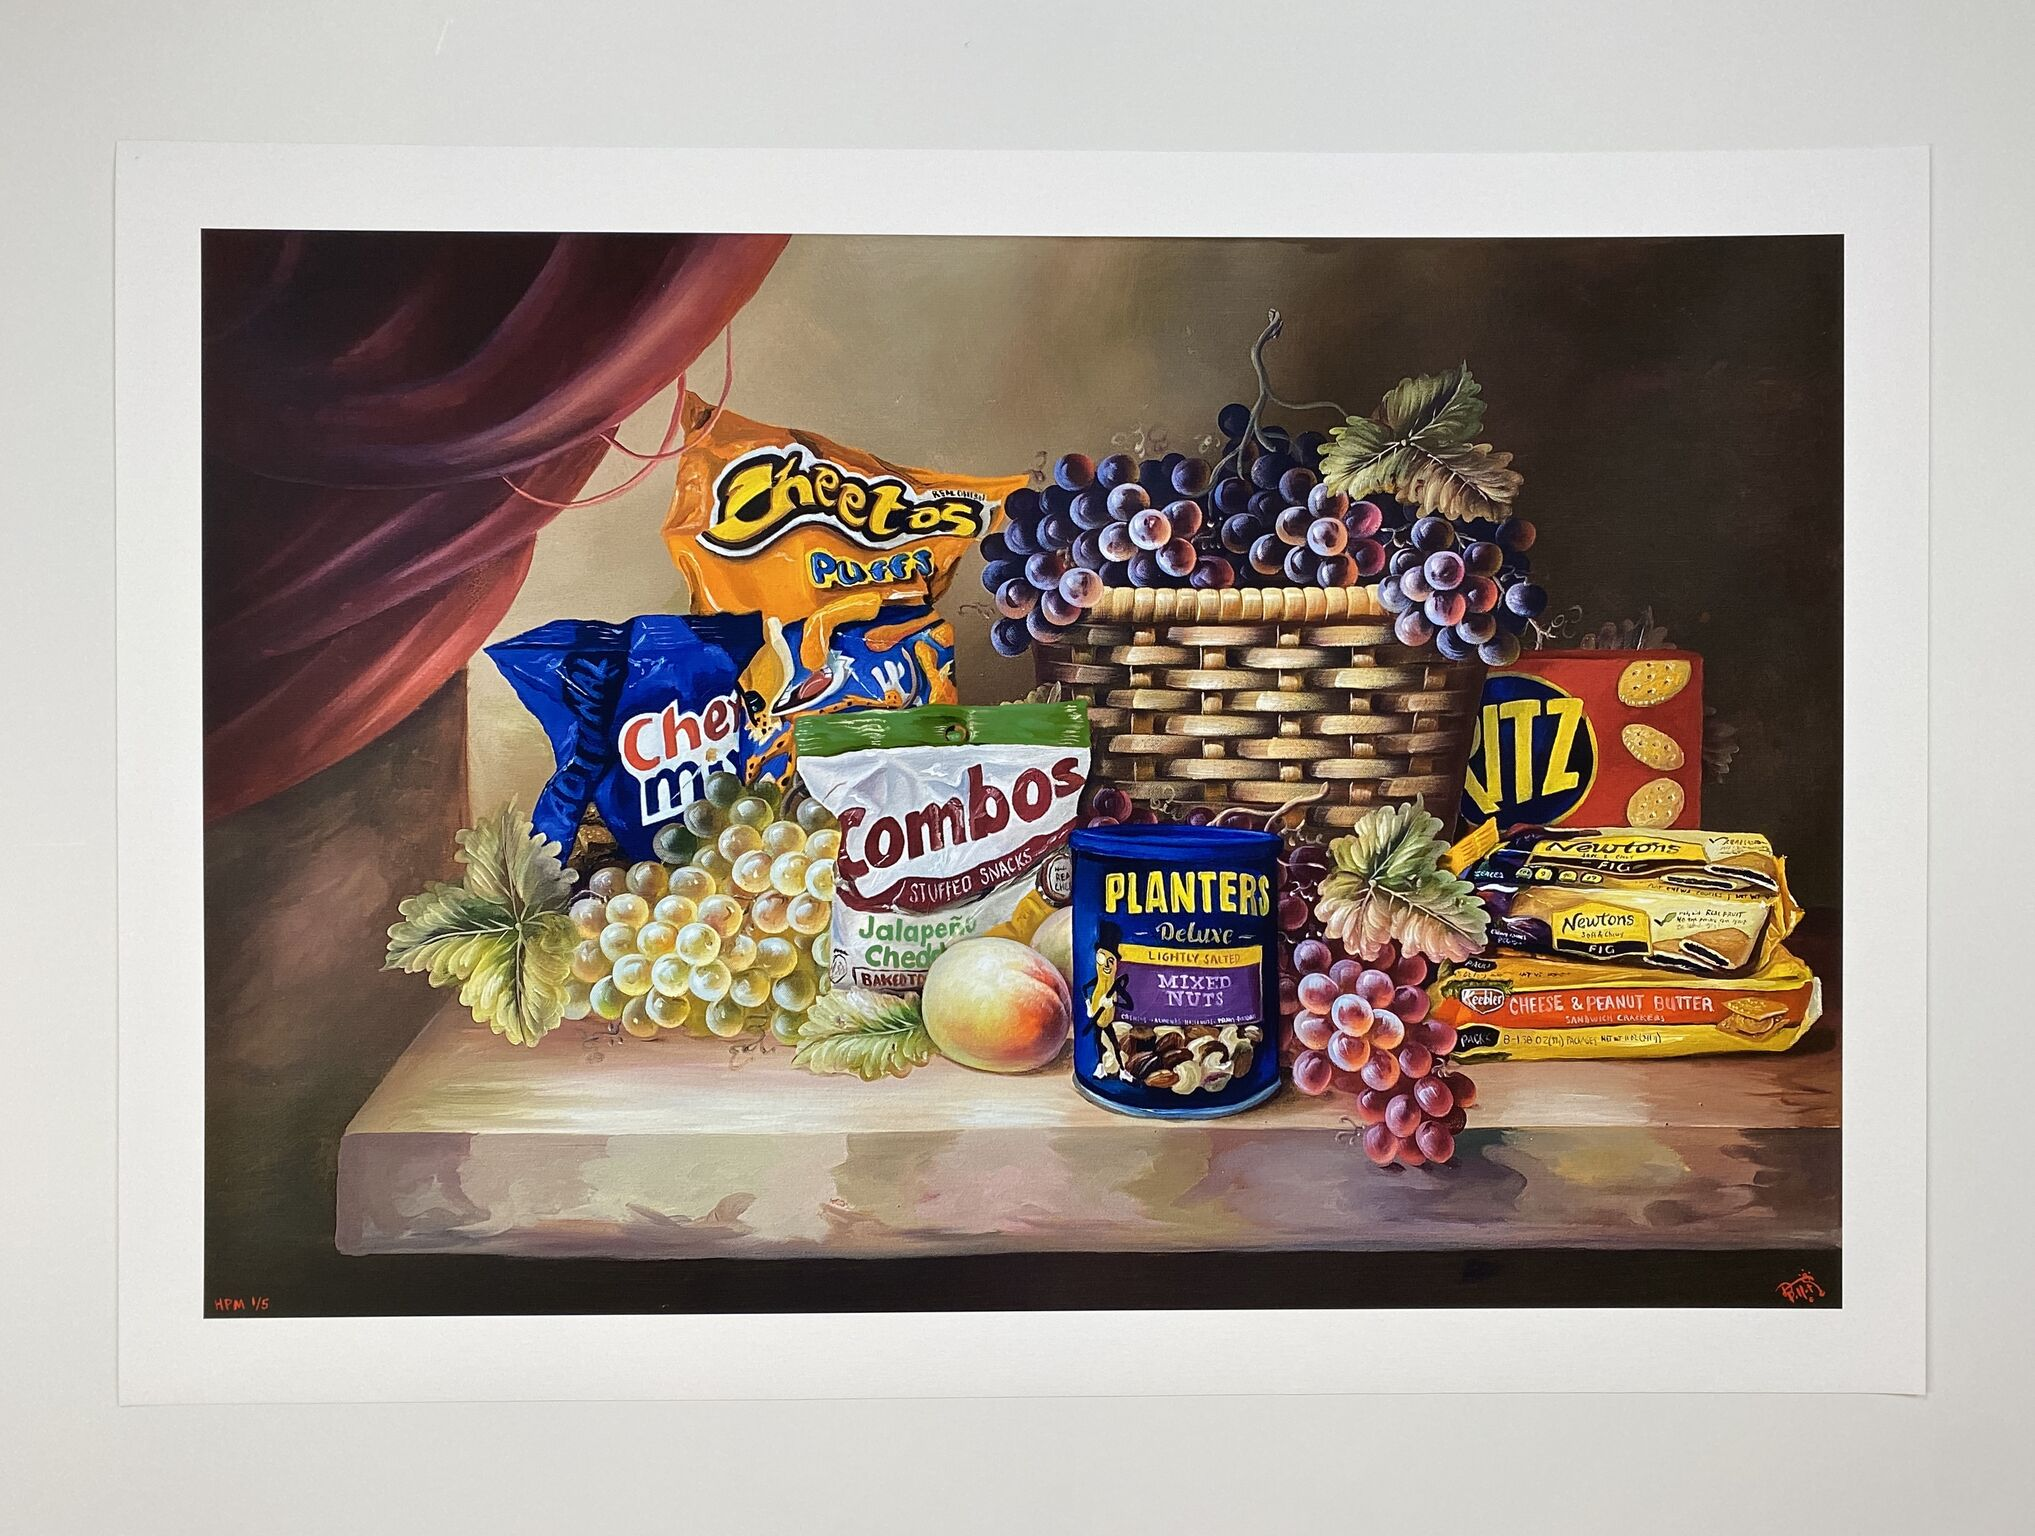 Shelf Life II (Spicy Combo) by Dave Pollot